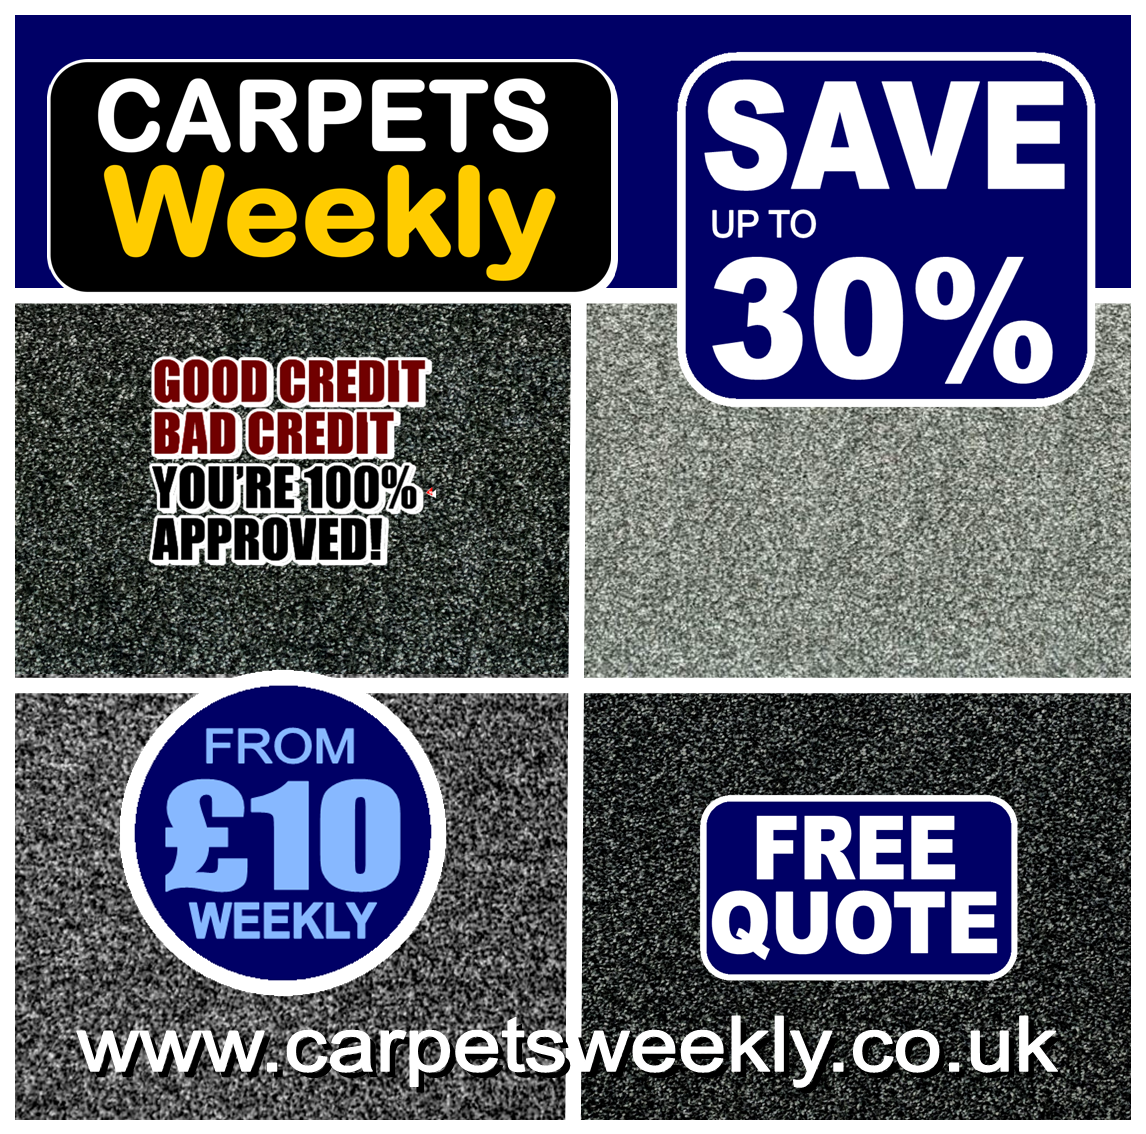 Quality carpets from Carpets Weekly in Middlesbrough